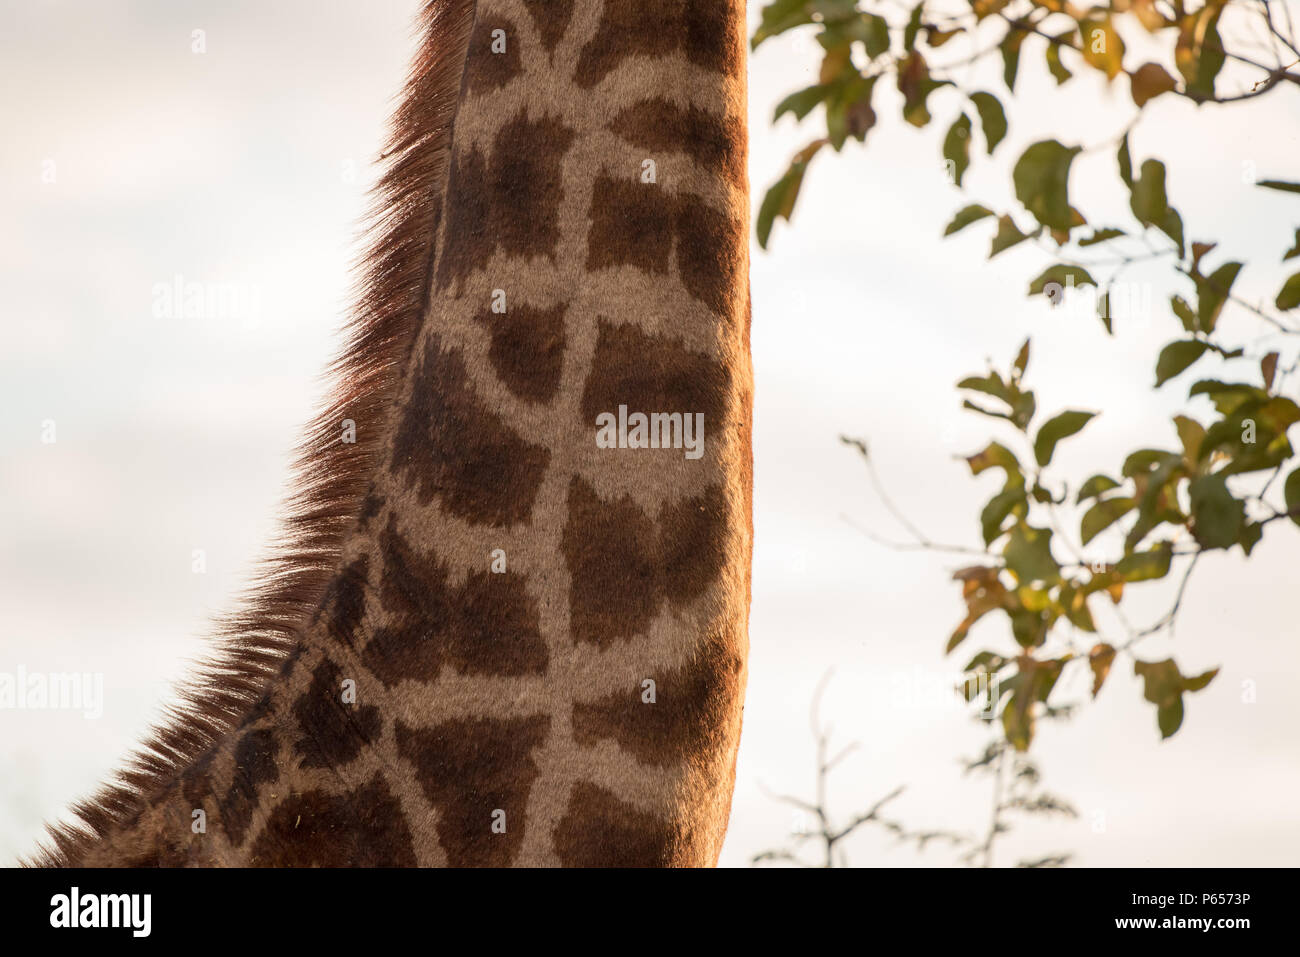 Giraffe's neck with head above trees - Stock Image